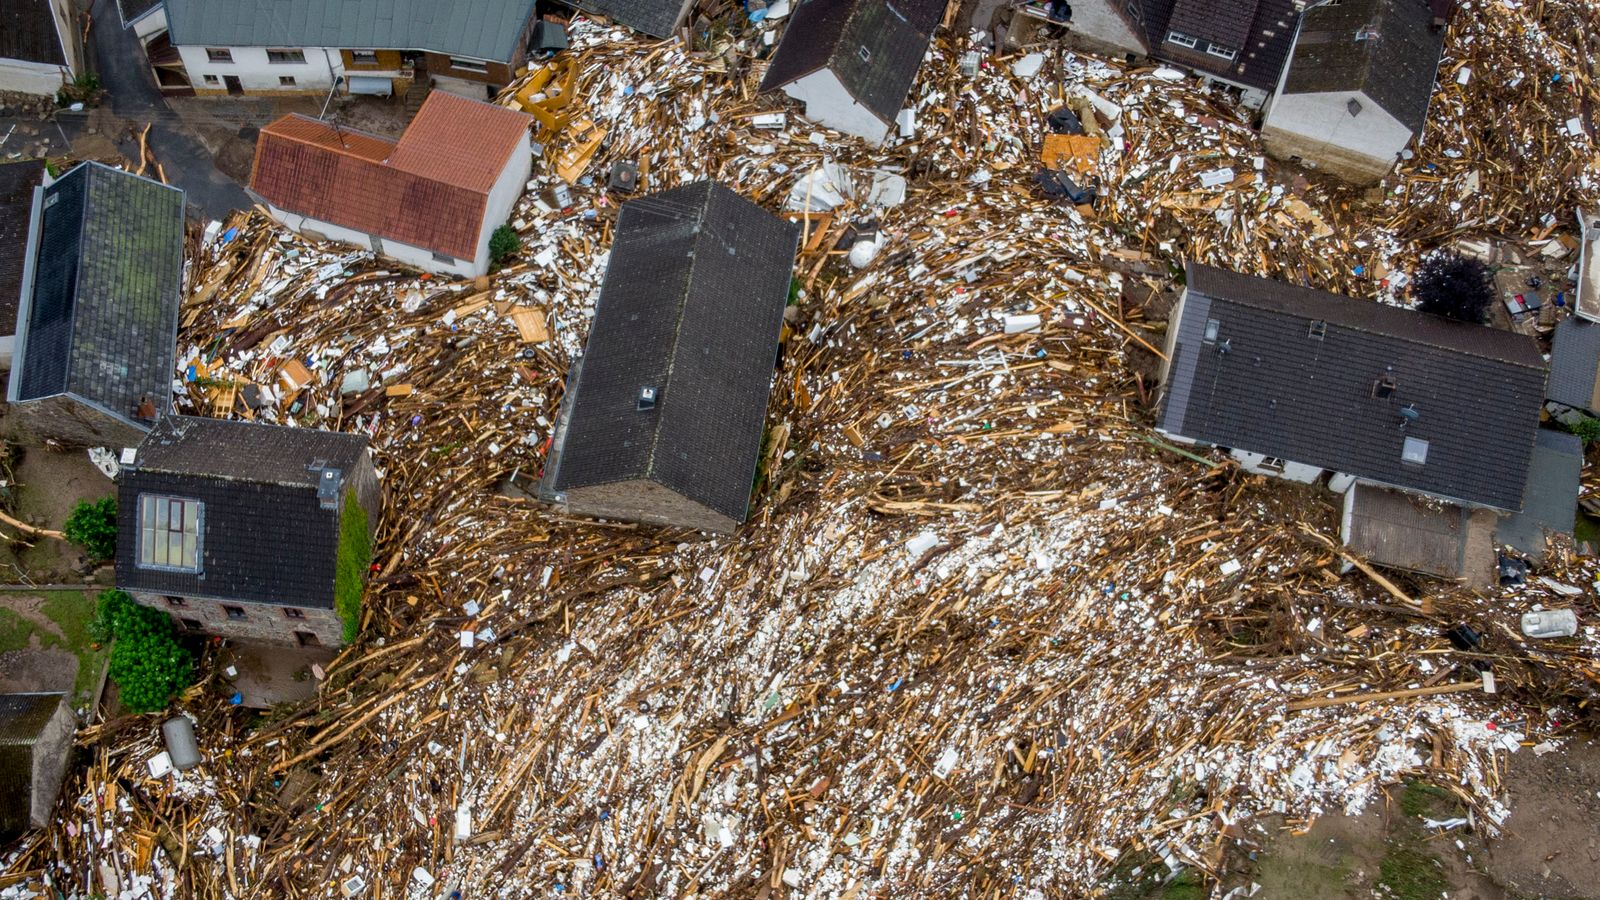 Trees and other detritus were left between houses in Schuld, Germany. Pic: Associated Press